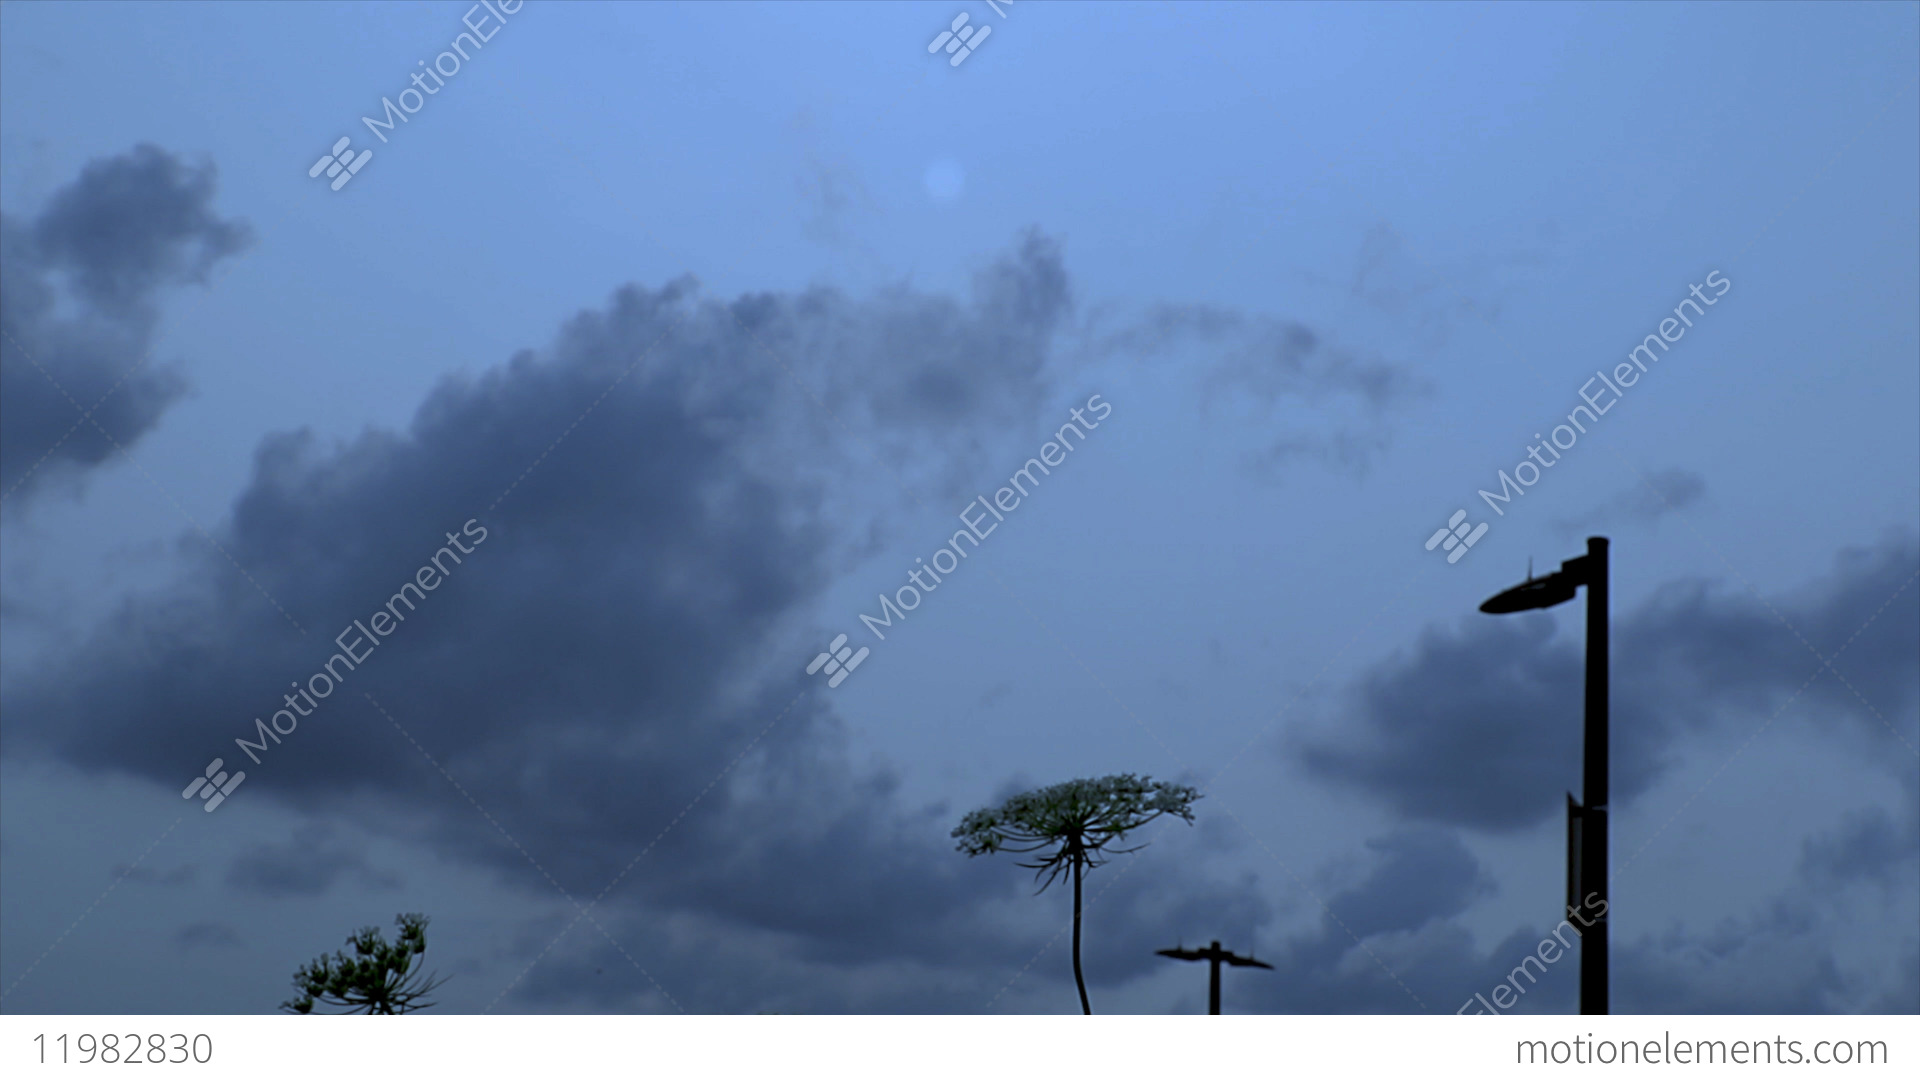 Ground View Of Plants With An Airplane Flying Over Head Stock Video Footage